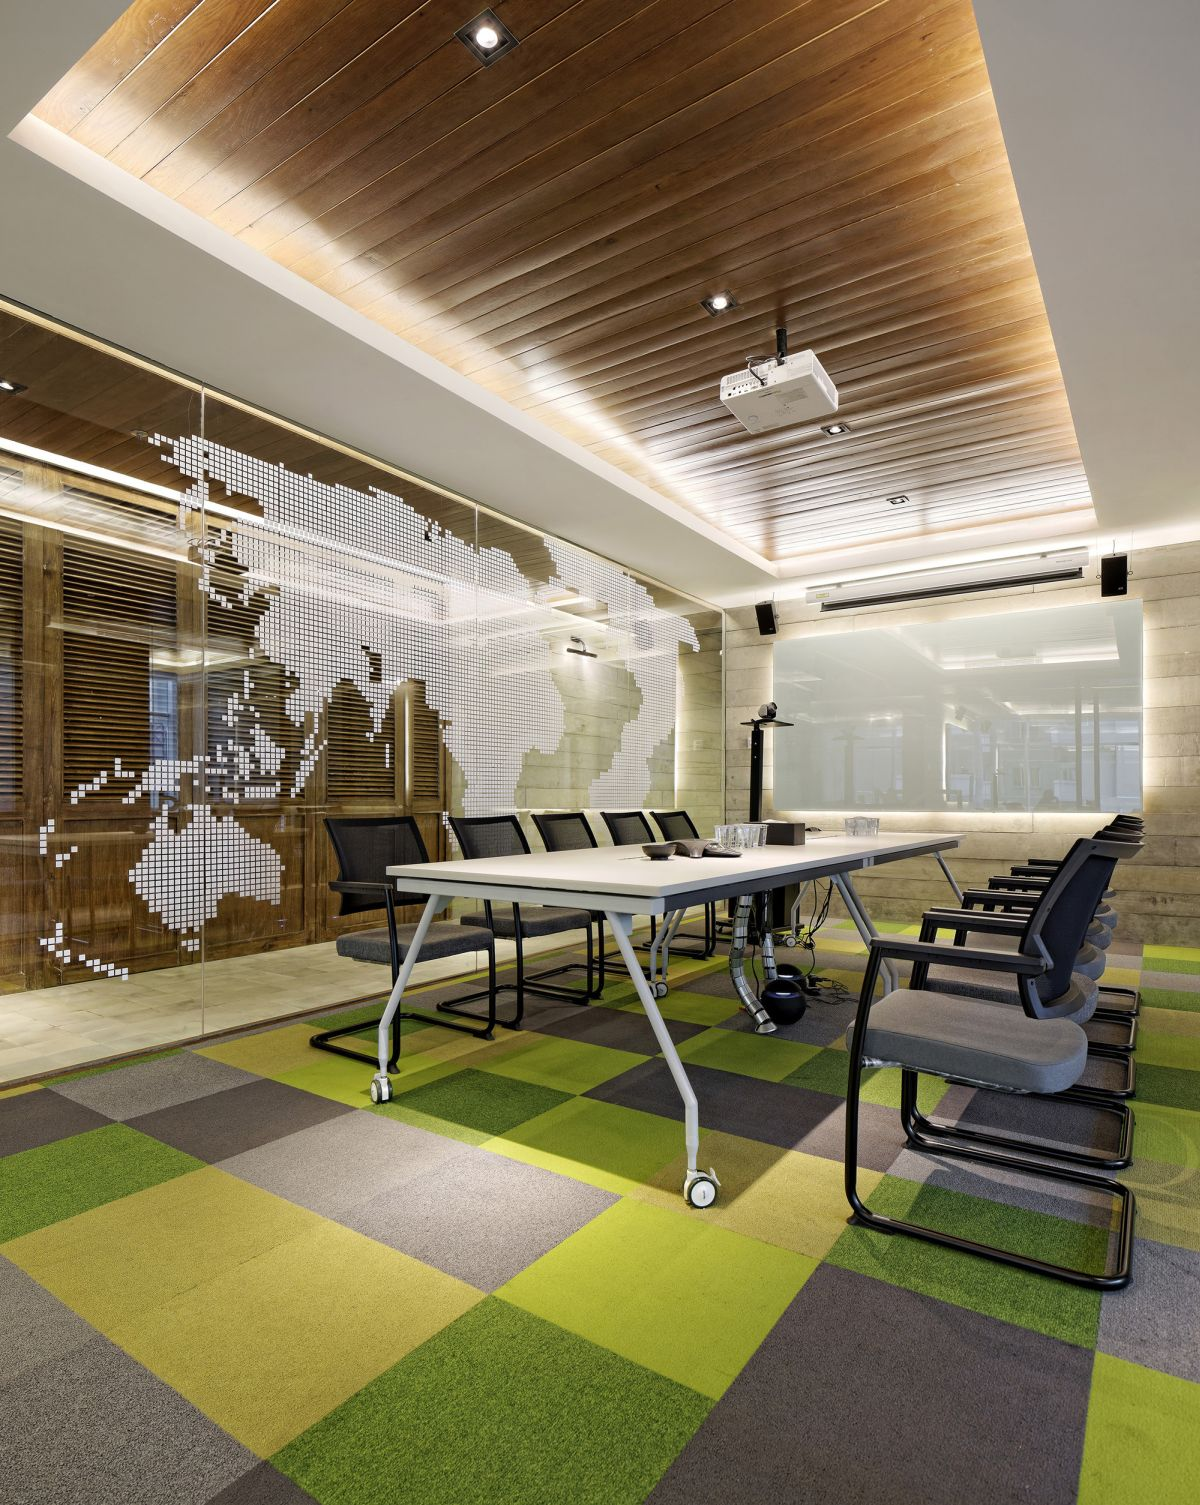 Inspiring office meeting rooms reveal their playful designs for Conference room design ideas office conference room